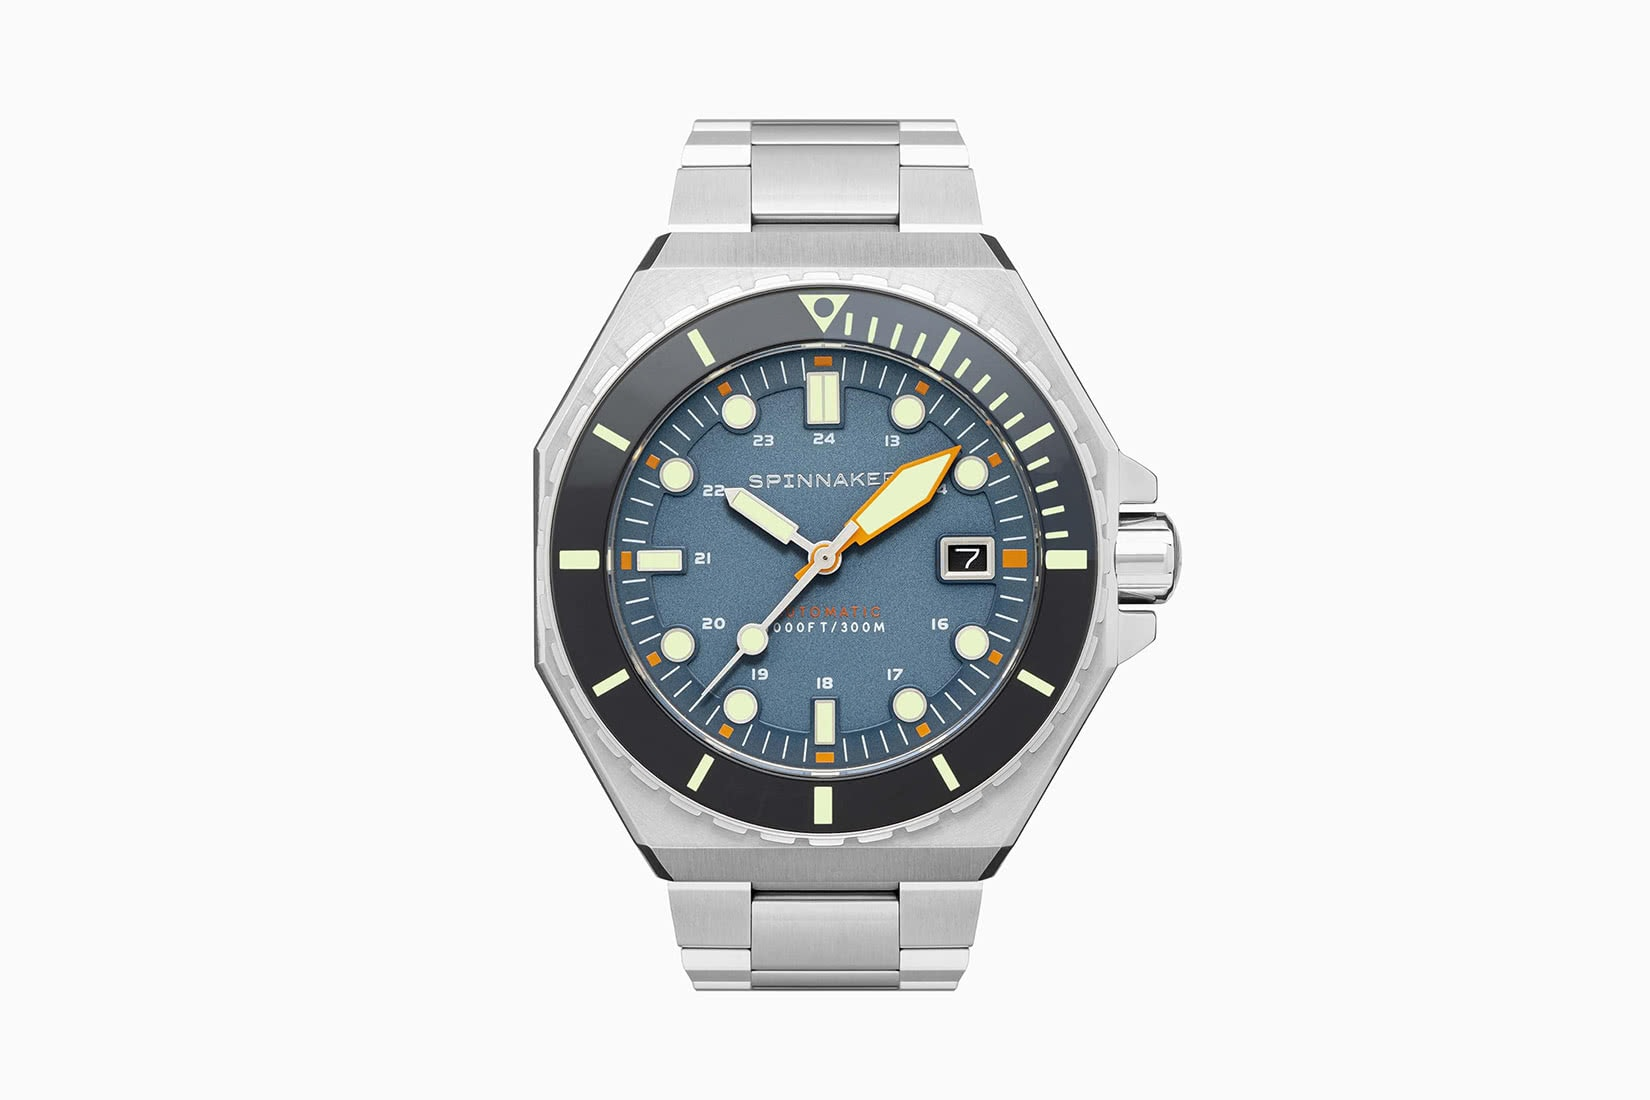 Spinnaker watches review Dumas price - Luxe Digital